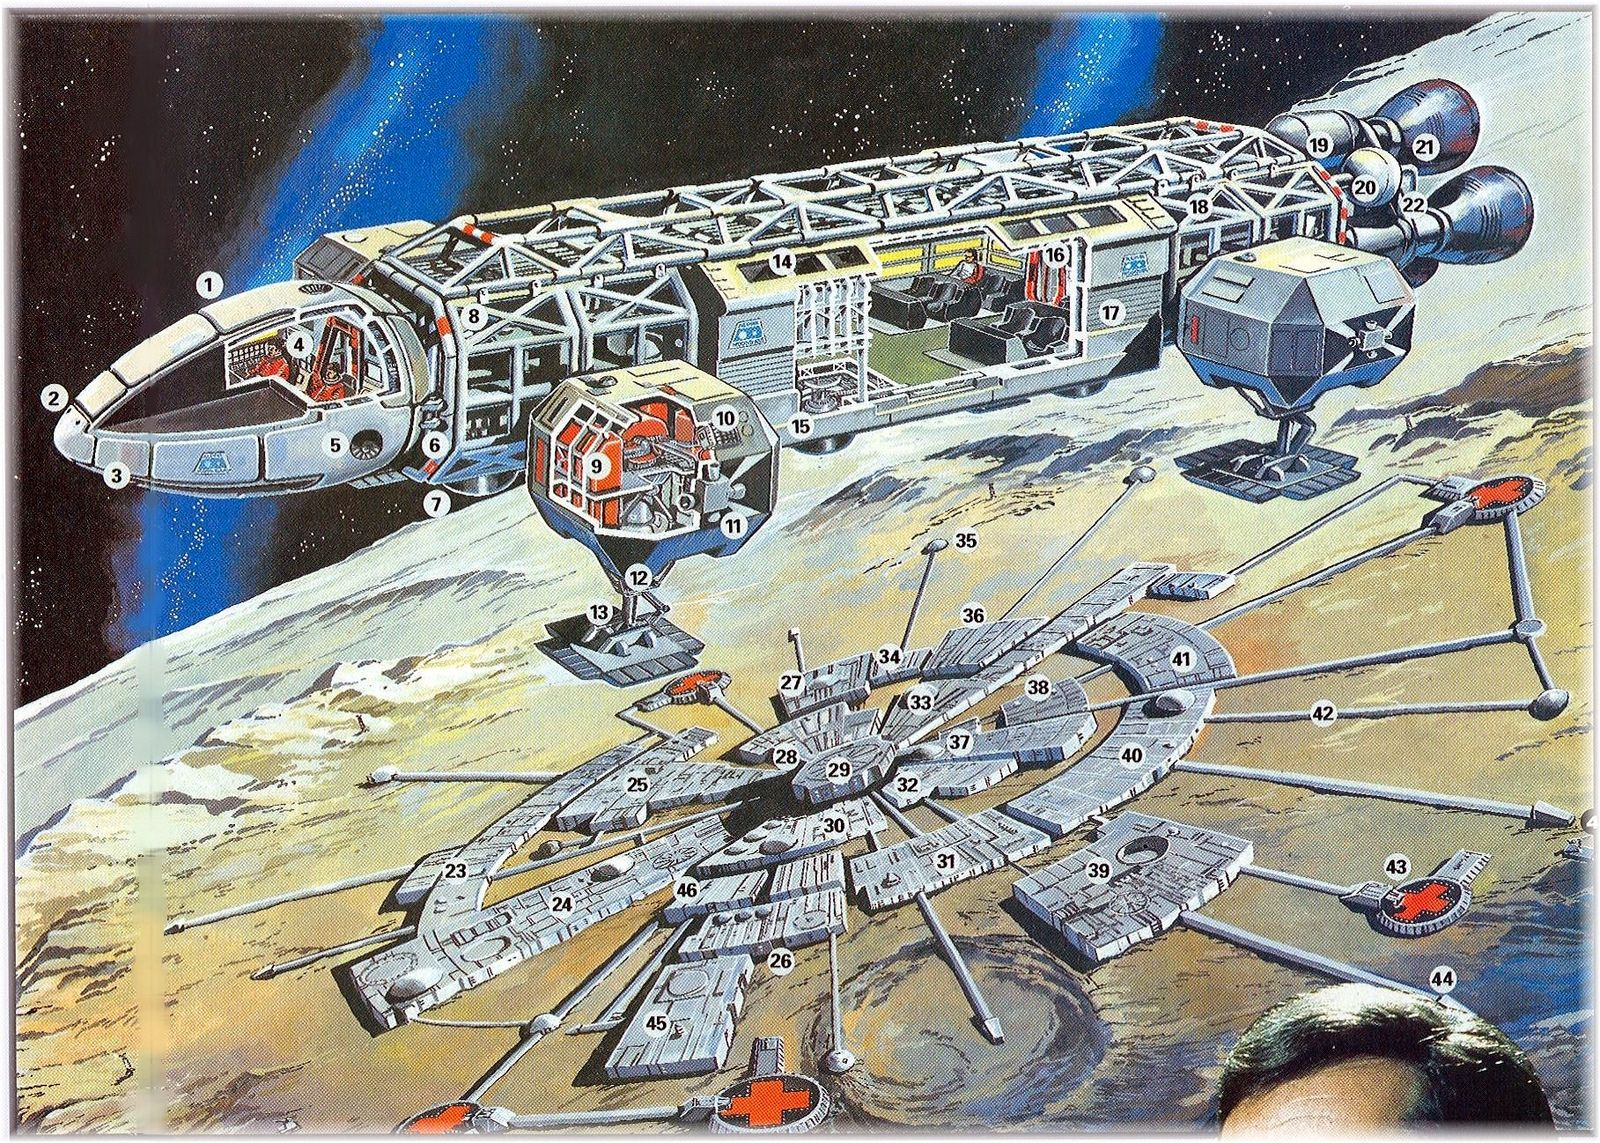 Space 1999 Moonbase Alpha map and Eagle cutaway diagram  Space